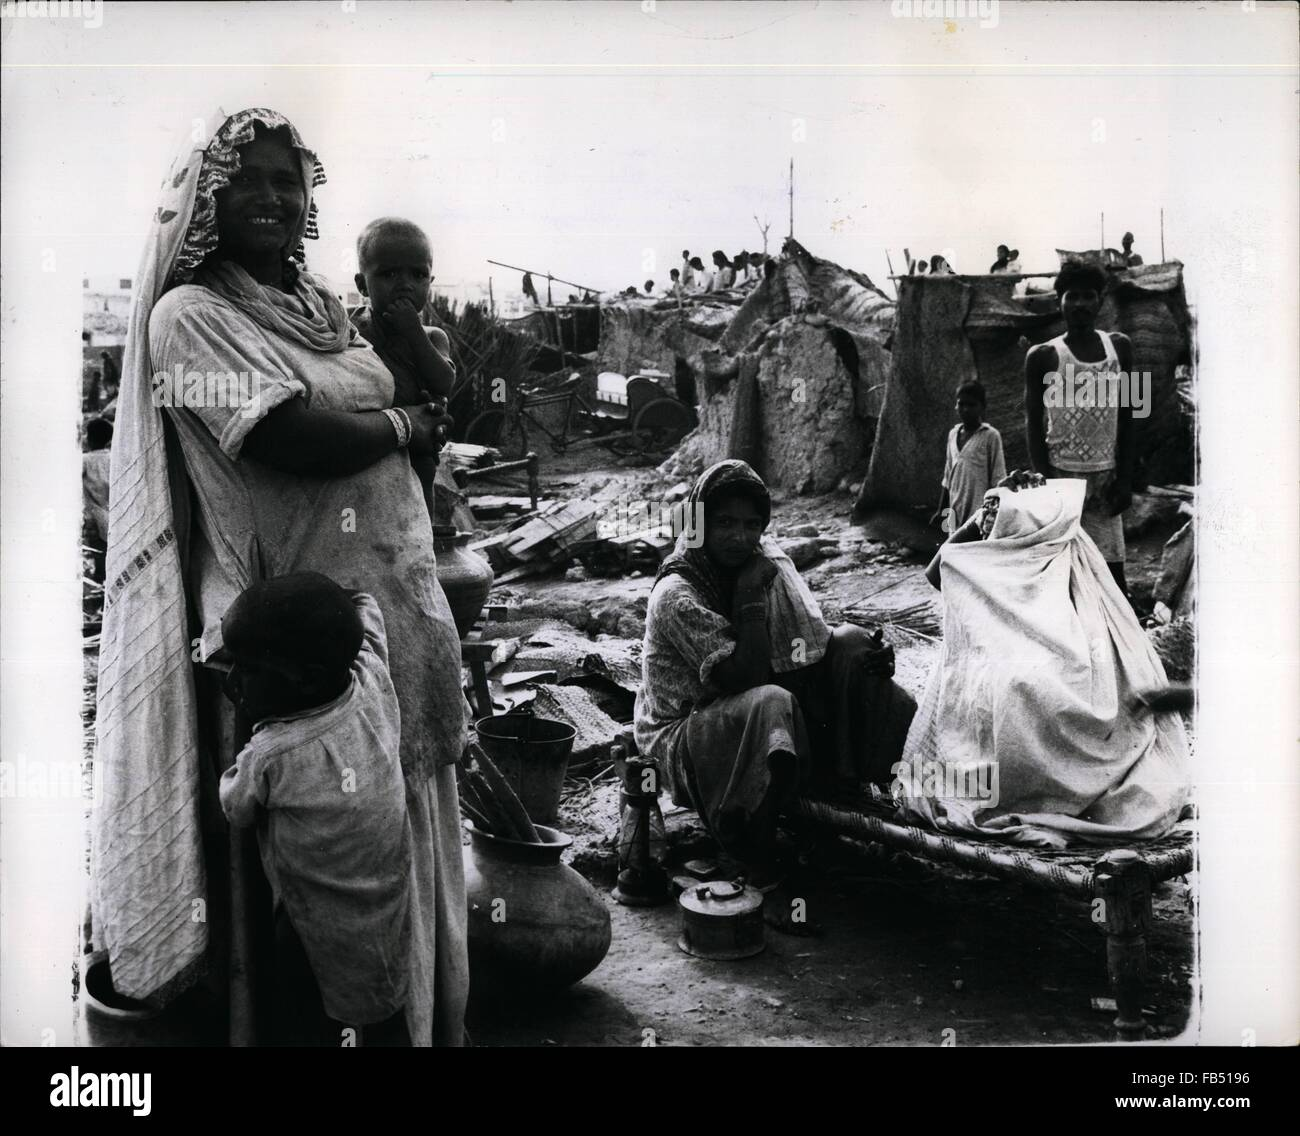 1968 - Eager To L a family in the largest shanty town of Karachi